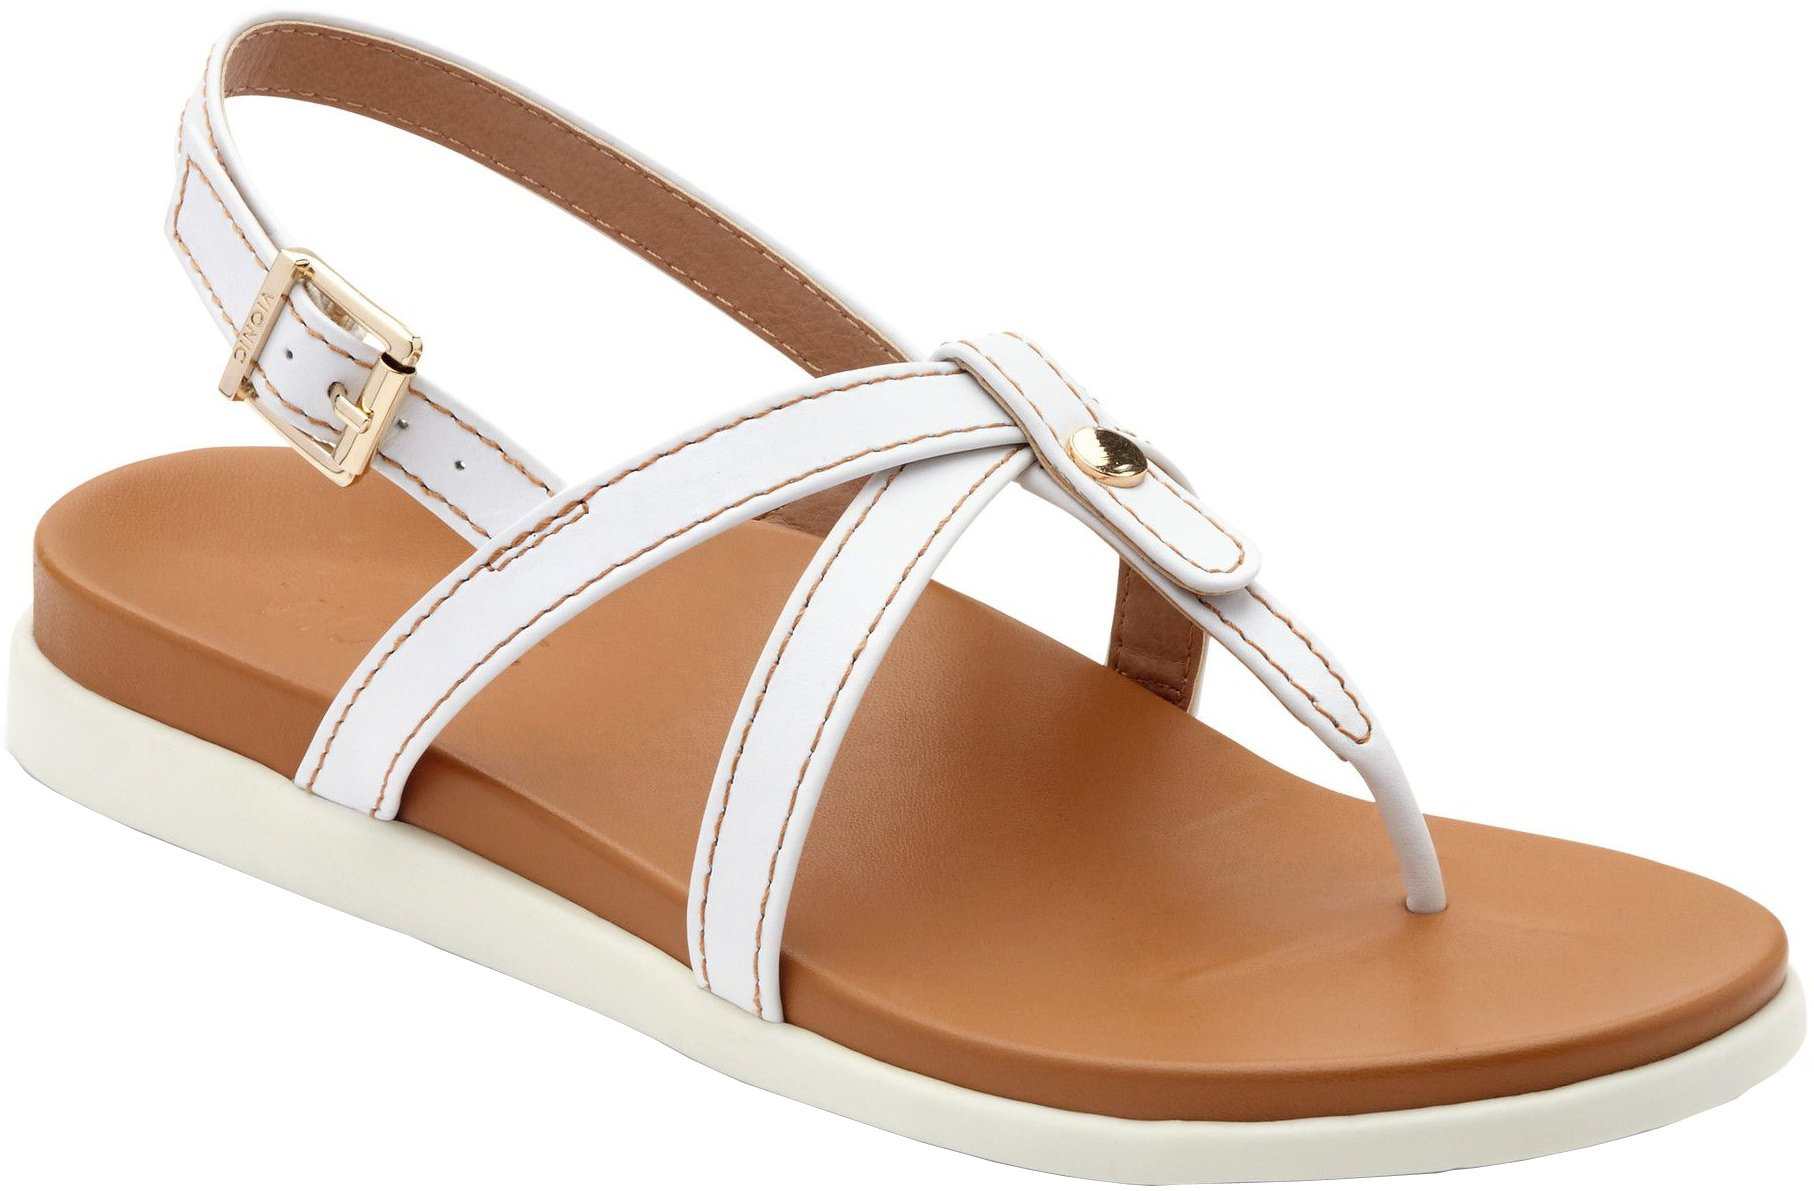 Vionic Palm Veranda- Womens Platform Sandal White - 10 Medium